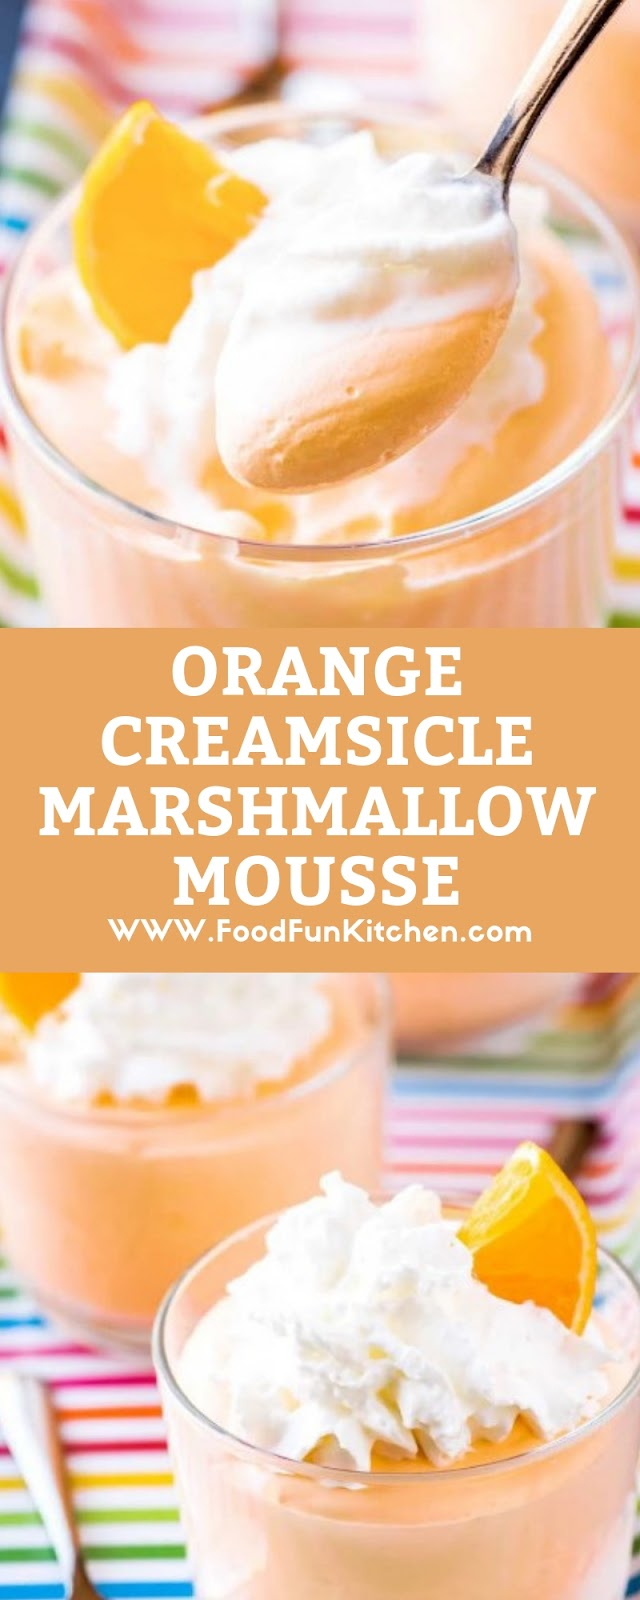 ORANGE CREAMSICLE MARSHMALLOW MOUSSE